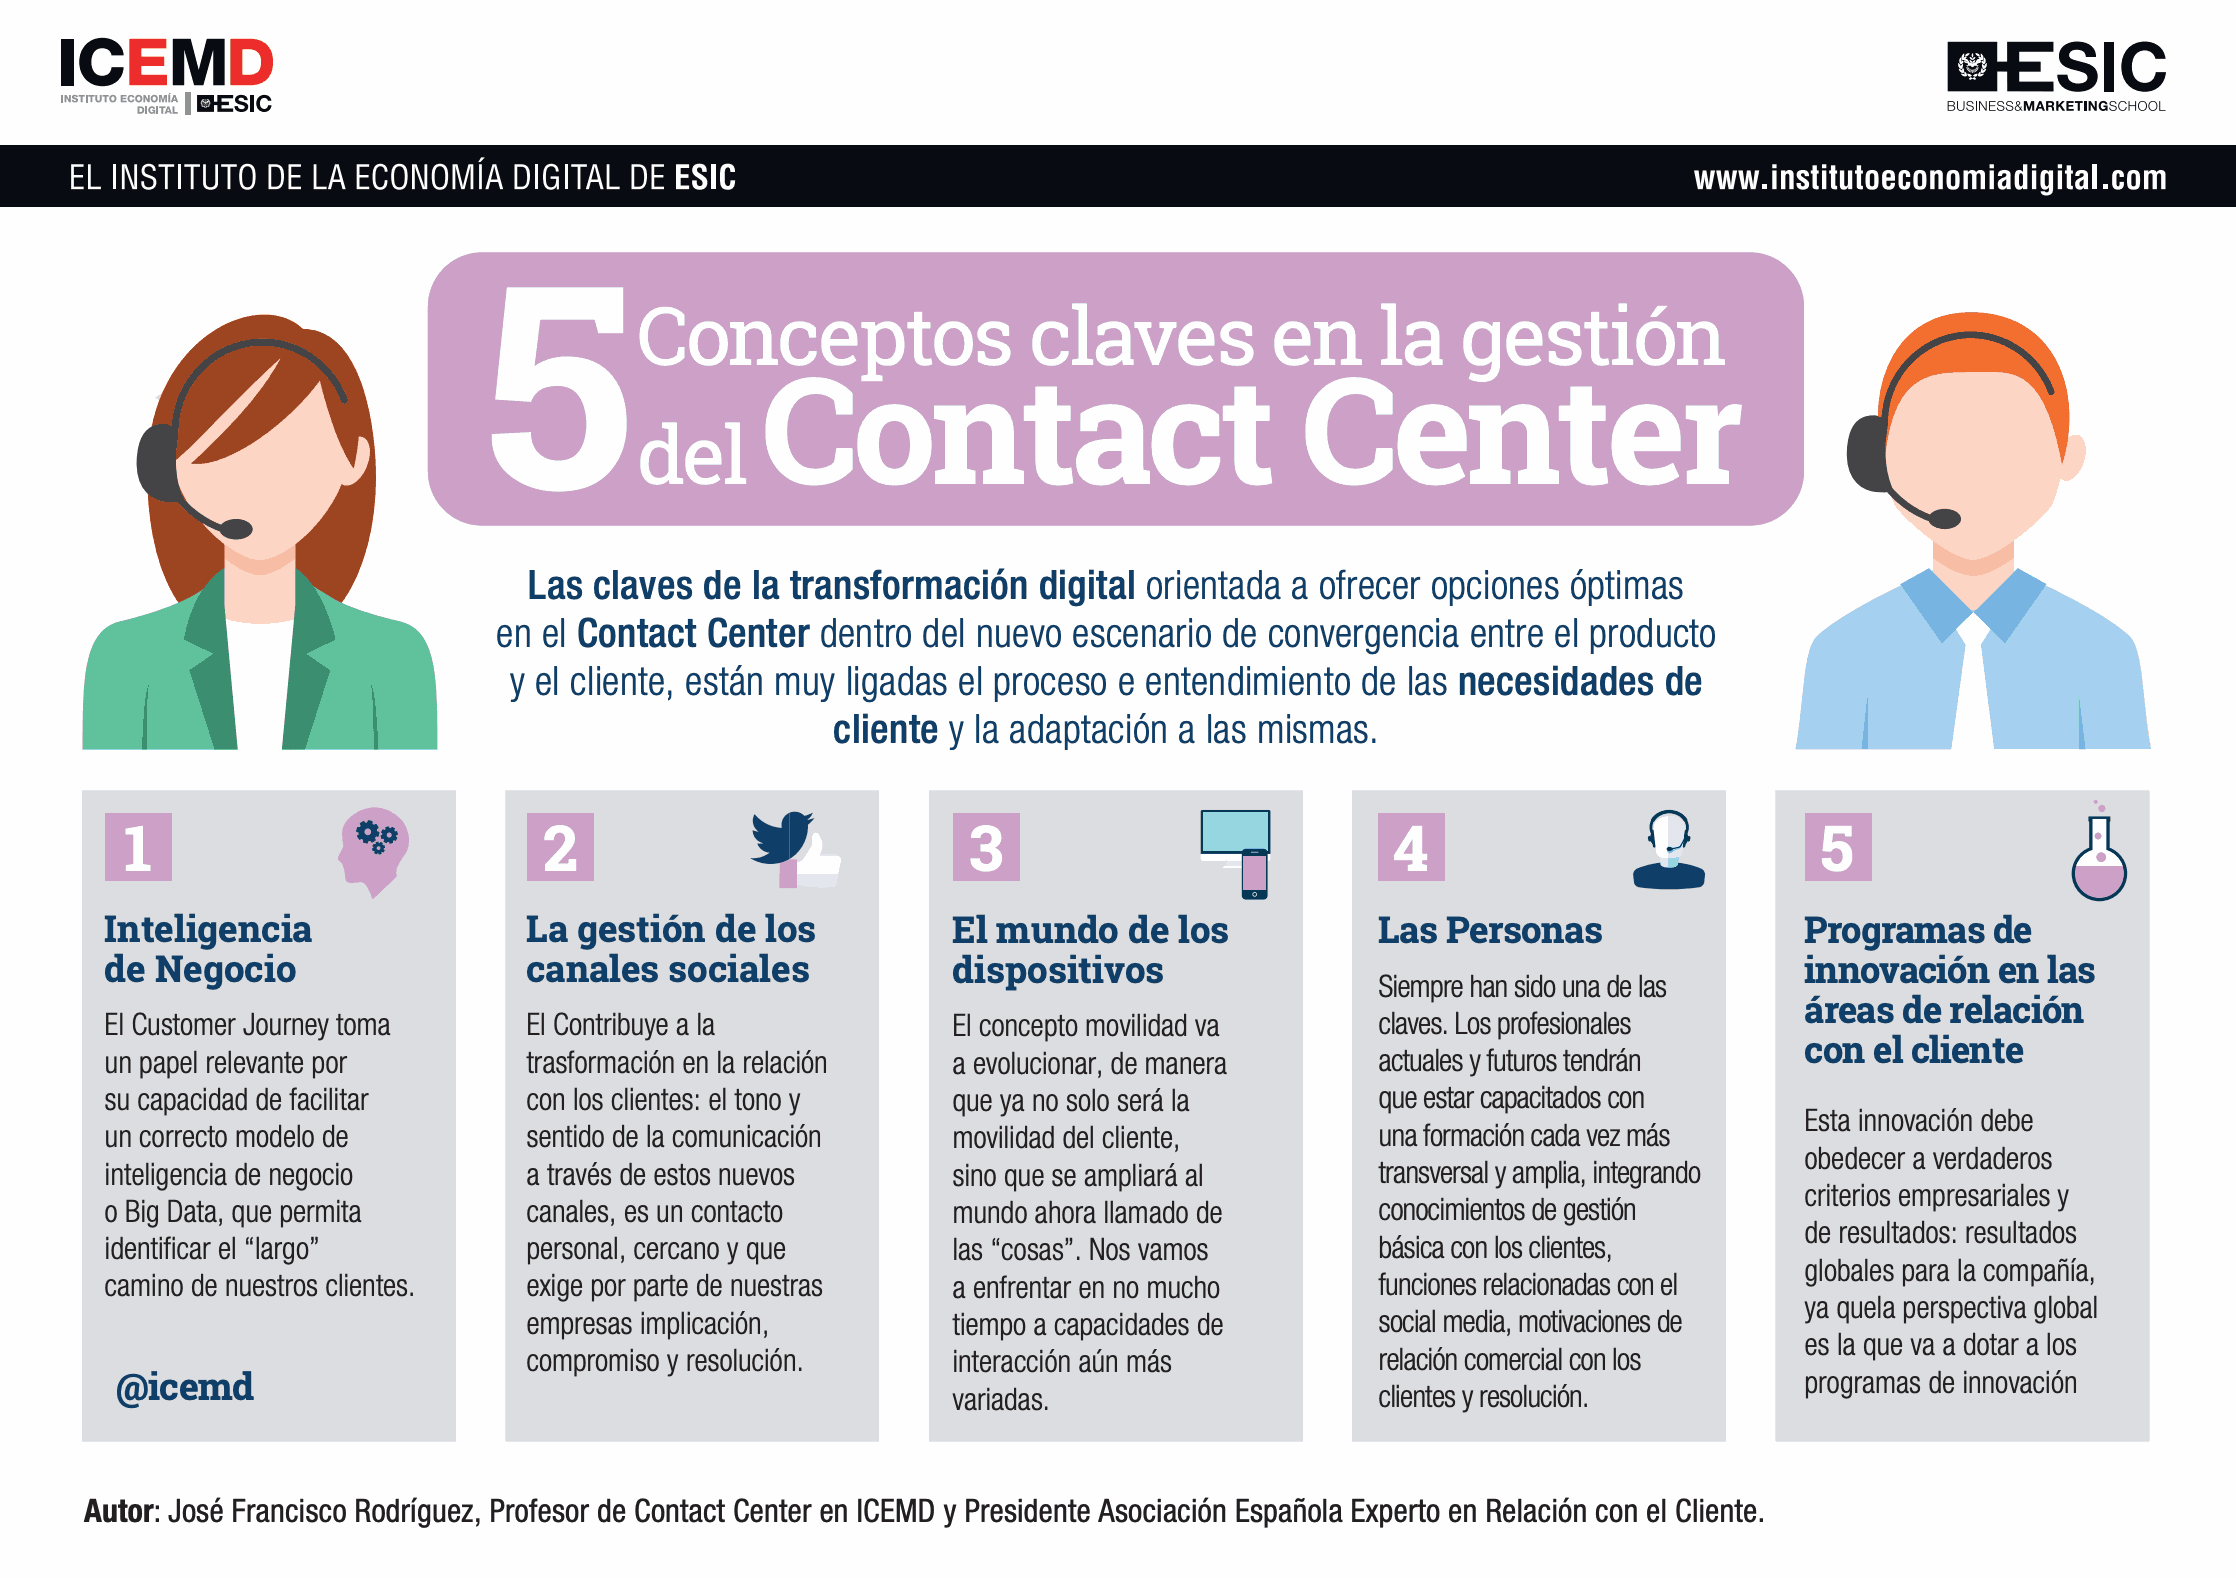 5 conceptos clave en la gestión del contact center